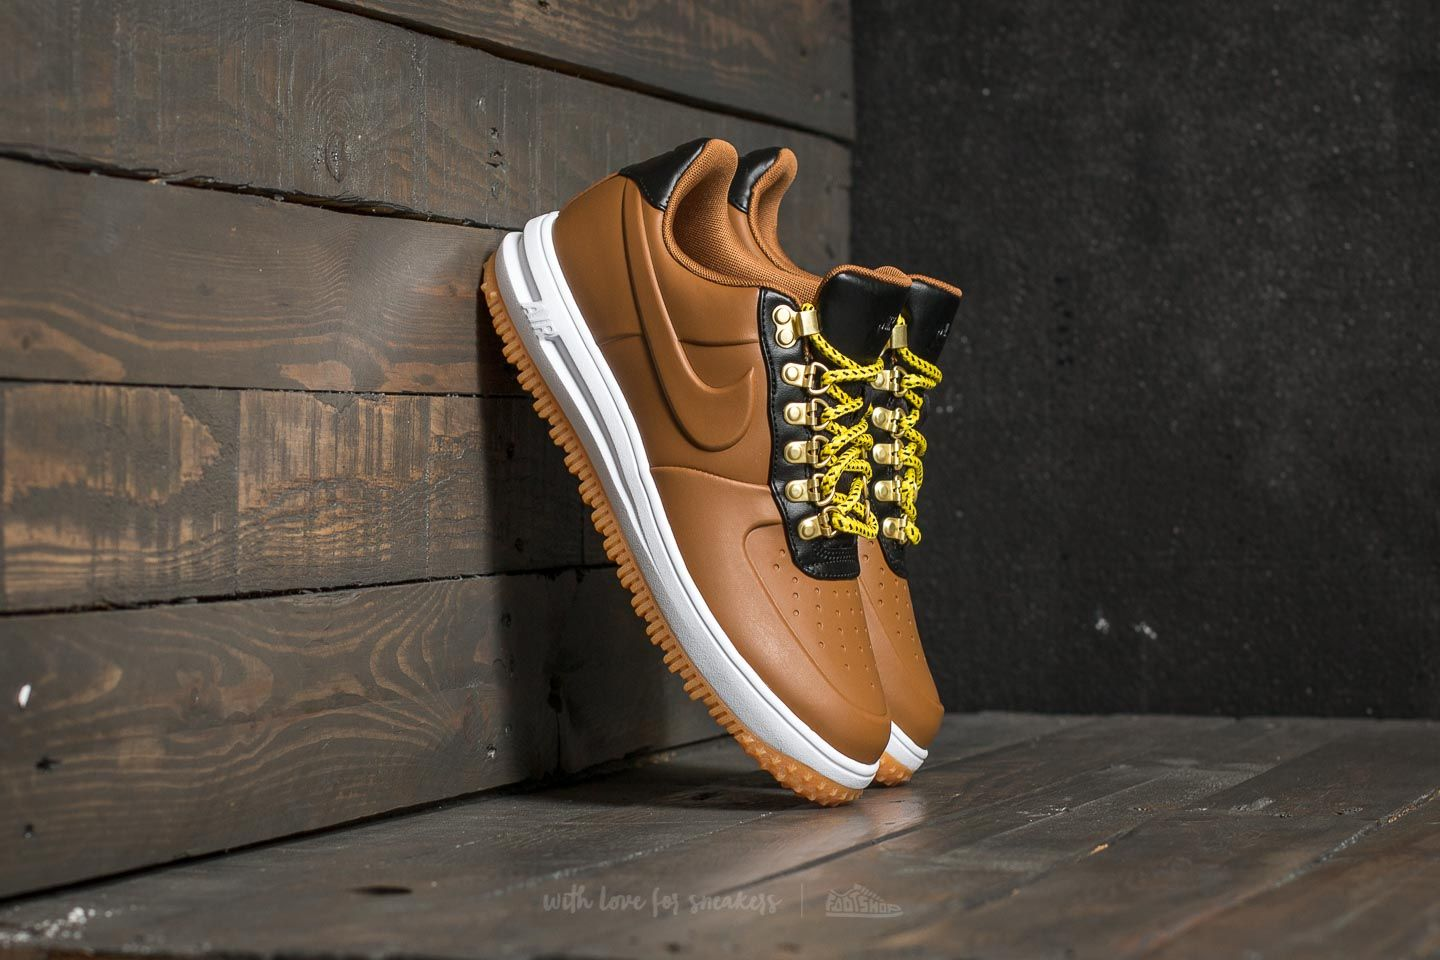 Nike Lunar Force 1 Duckboot Low Ale Brown Ale Brown Black | Footshop